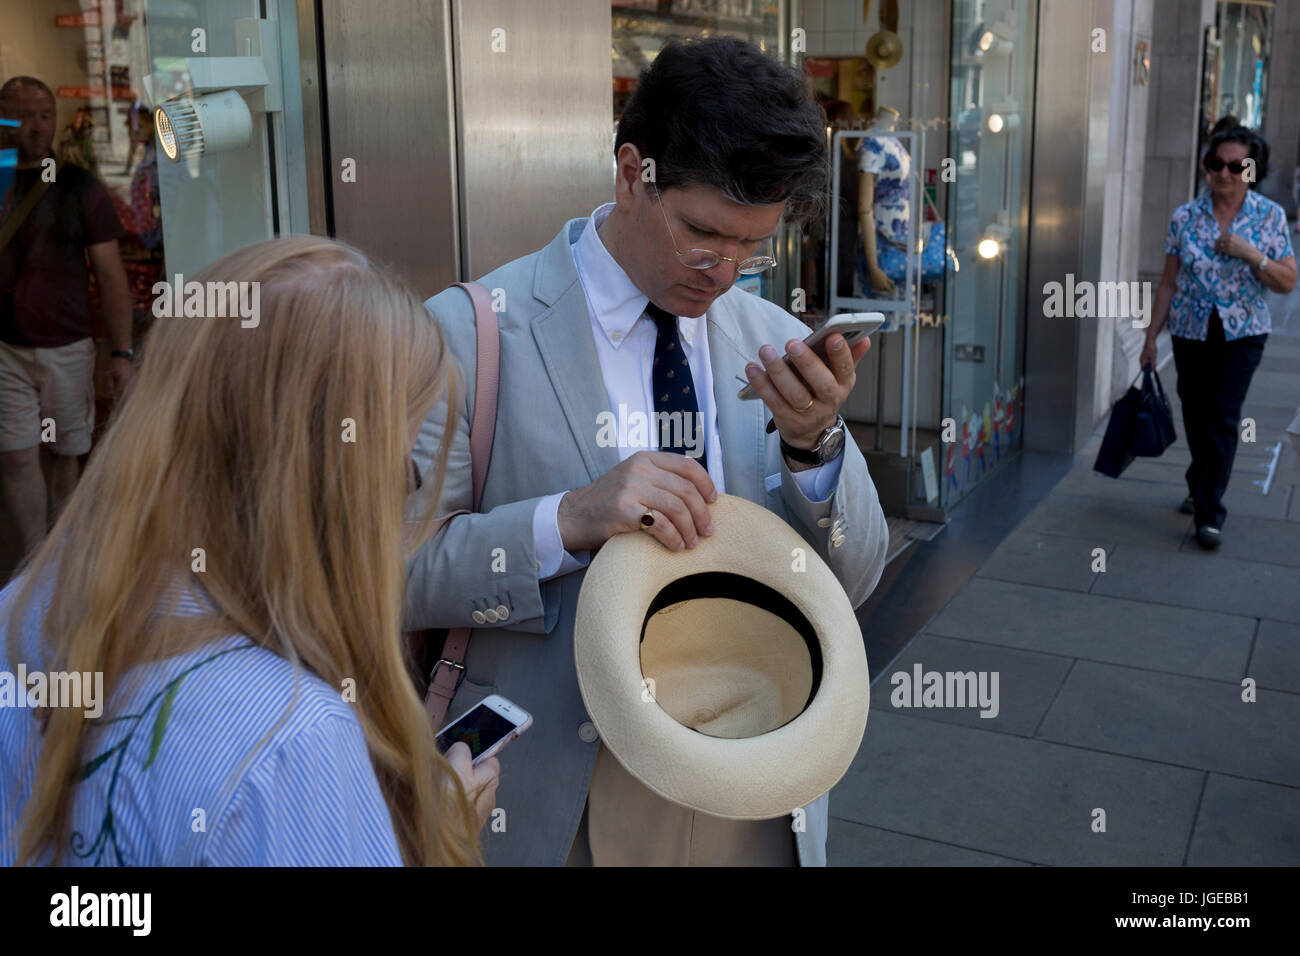 A gentleman checks his messages after removing his summer hat, on 5th July 2017, in London, England. - Stock Image